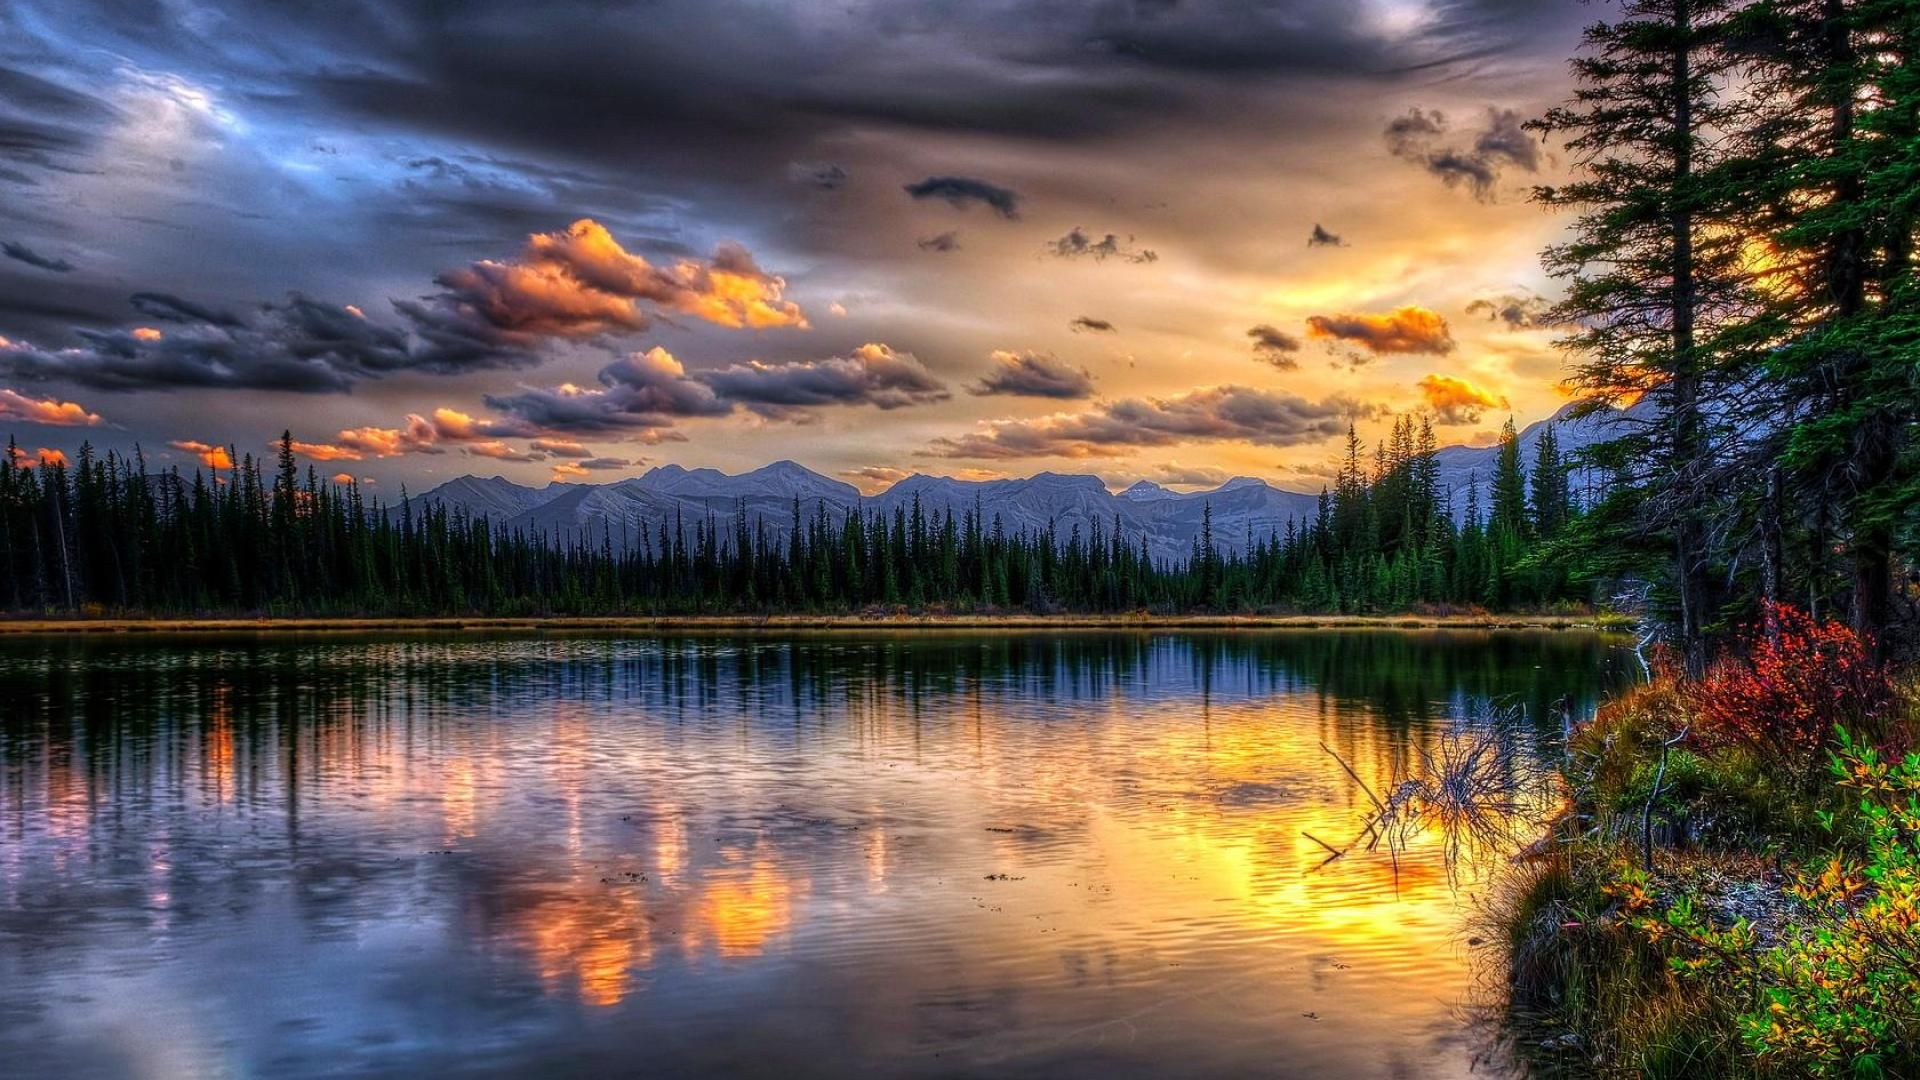 Beautiful Landscape Wallpaper Download Free Beautiful Landscape Pictures Beautiful Landscape Wallpaper Landscape Pictures